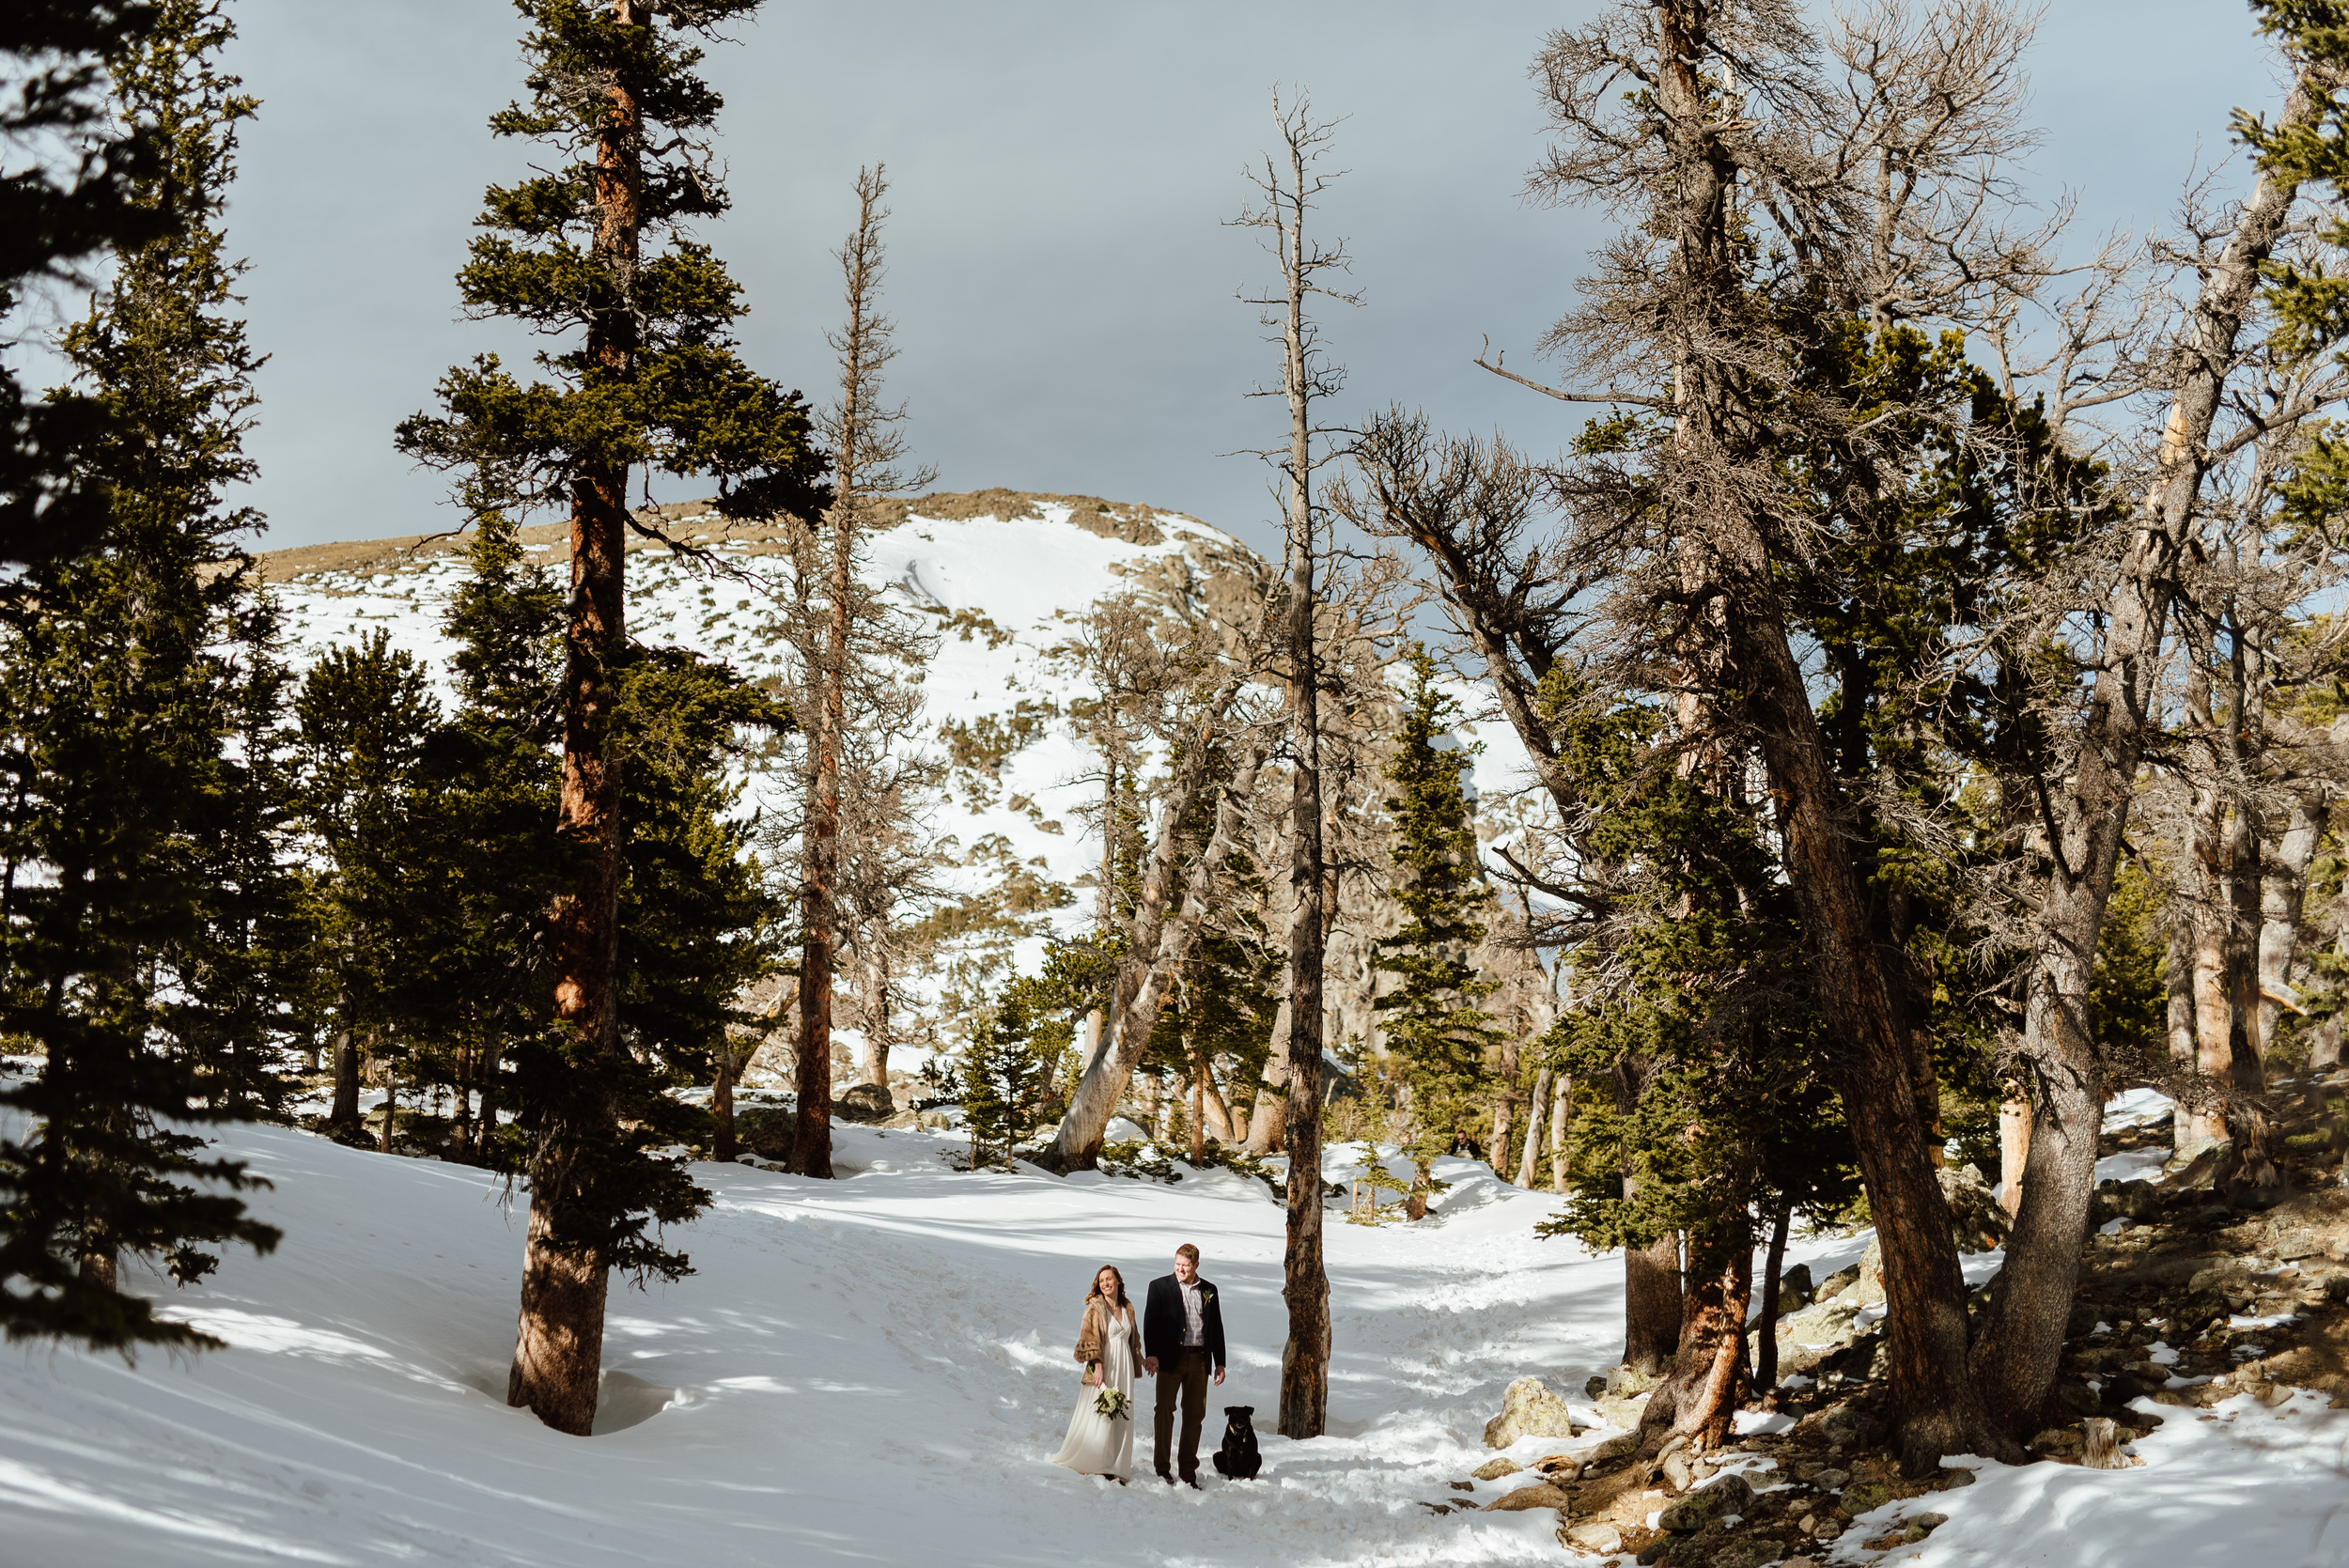 The forest surrounding Saint Mary's Glacier in Idaho Springs, Colorado is such a beautiful spot to get married. I love these adventurous hiking wedding photos!| Intimate elopement pictures by mountain wedding photographer, Maddie Mae.